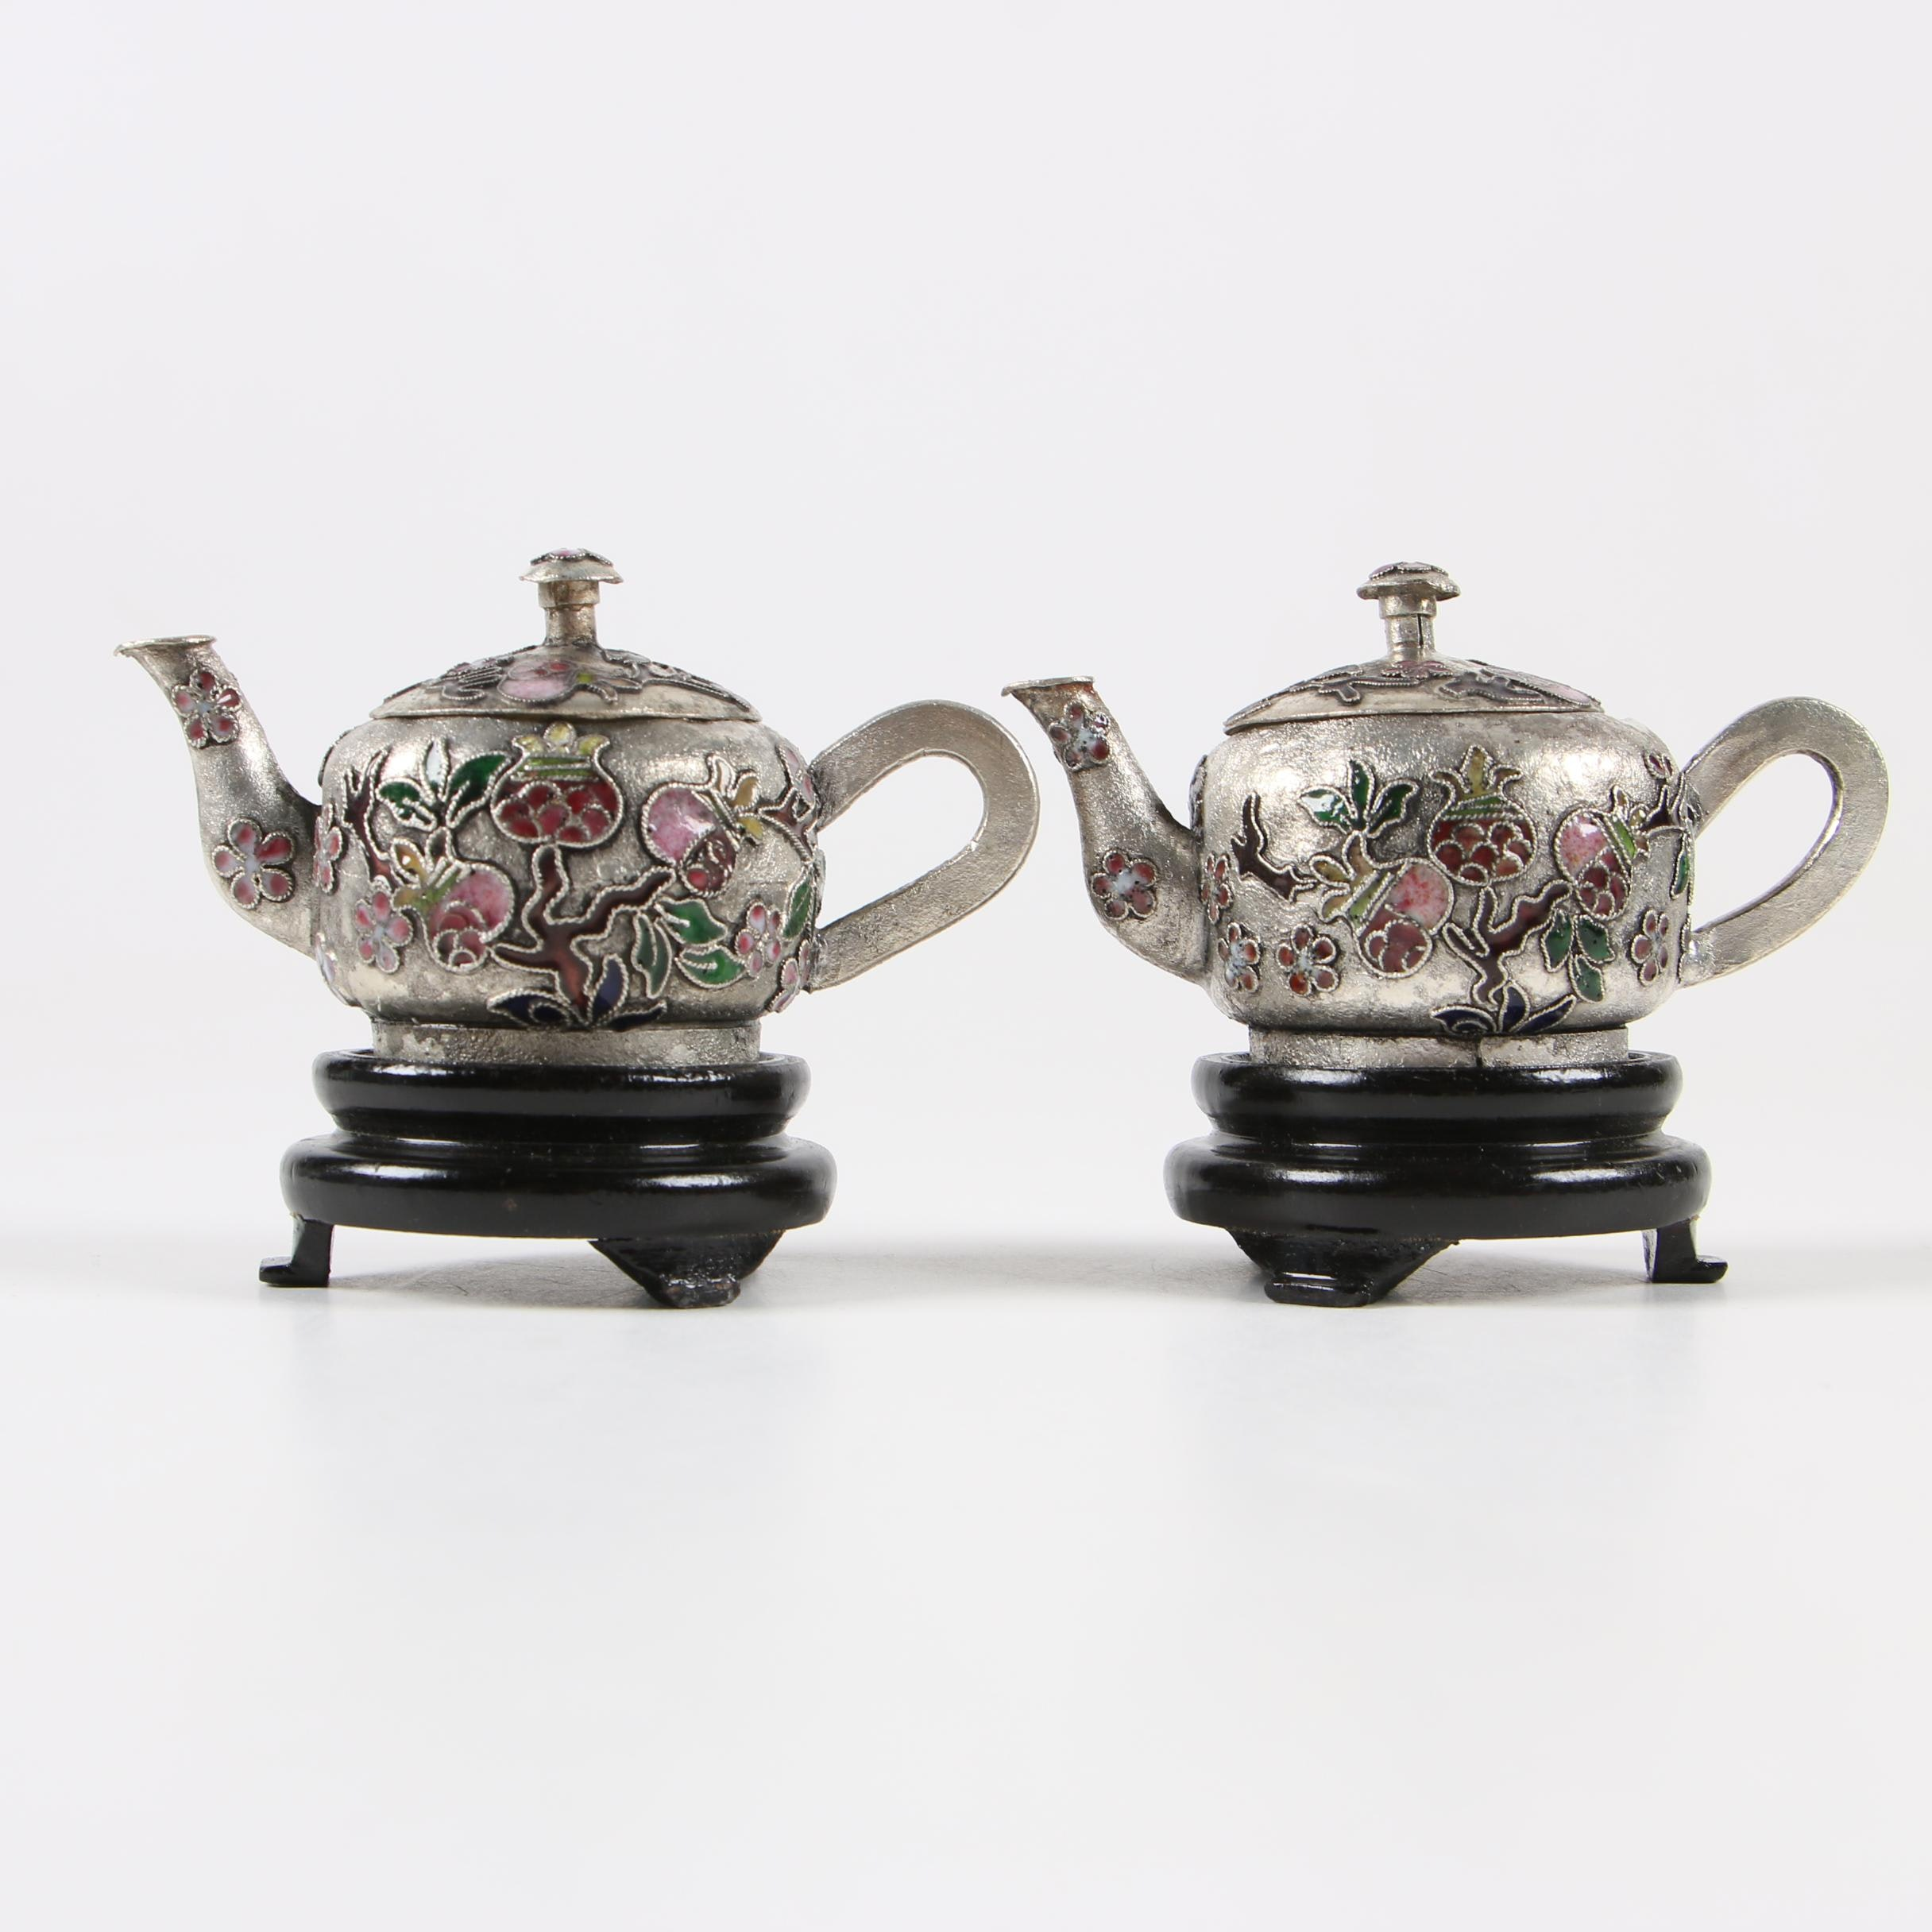 Pair of Chinese Chinoiserie Miniature Teapots on Stands